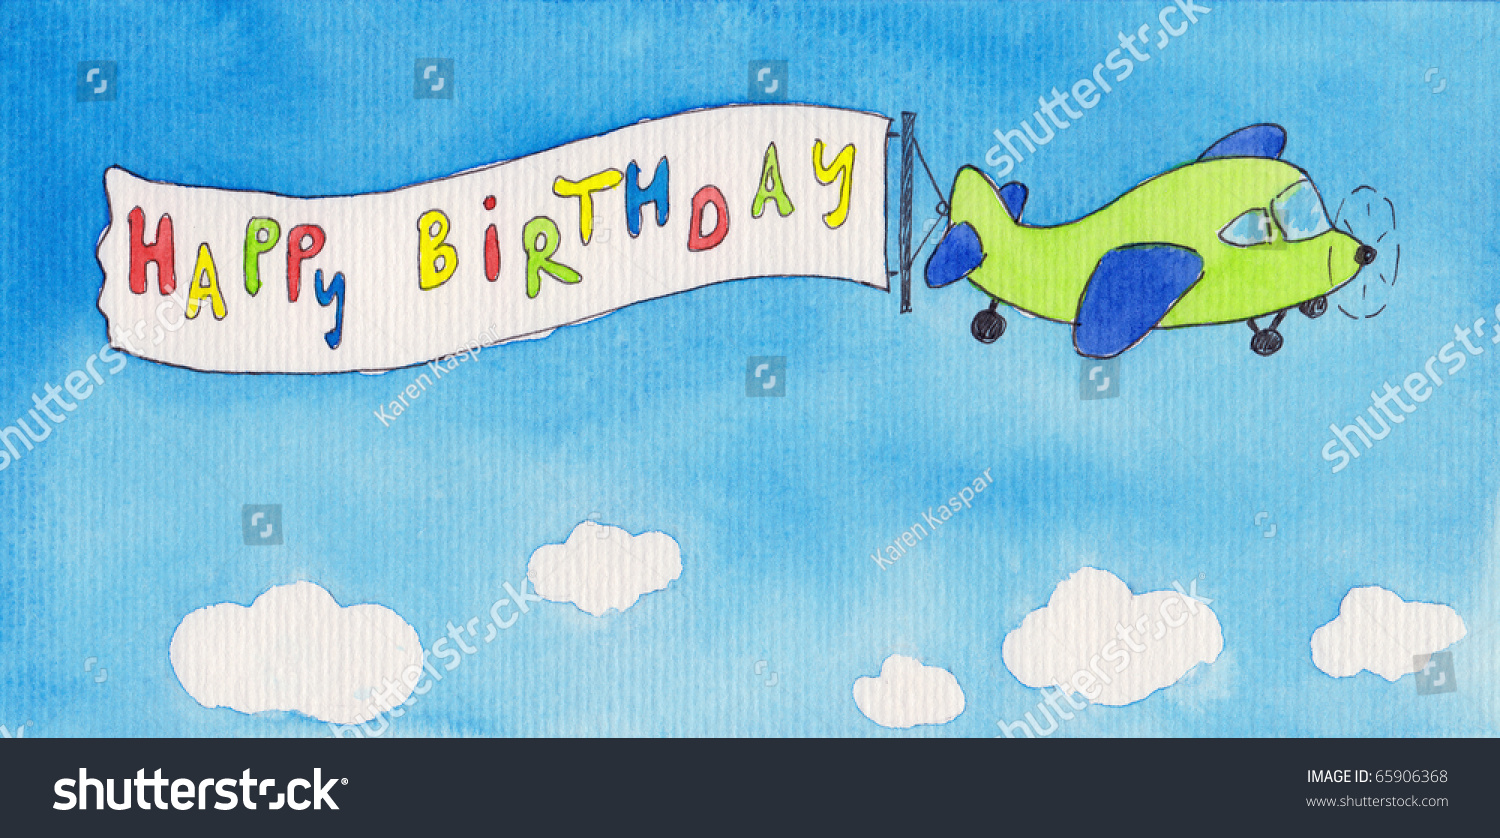 Airplane Pulling Happy Birthday Banner Watercolor Stock